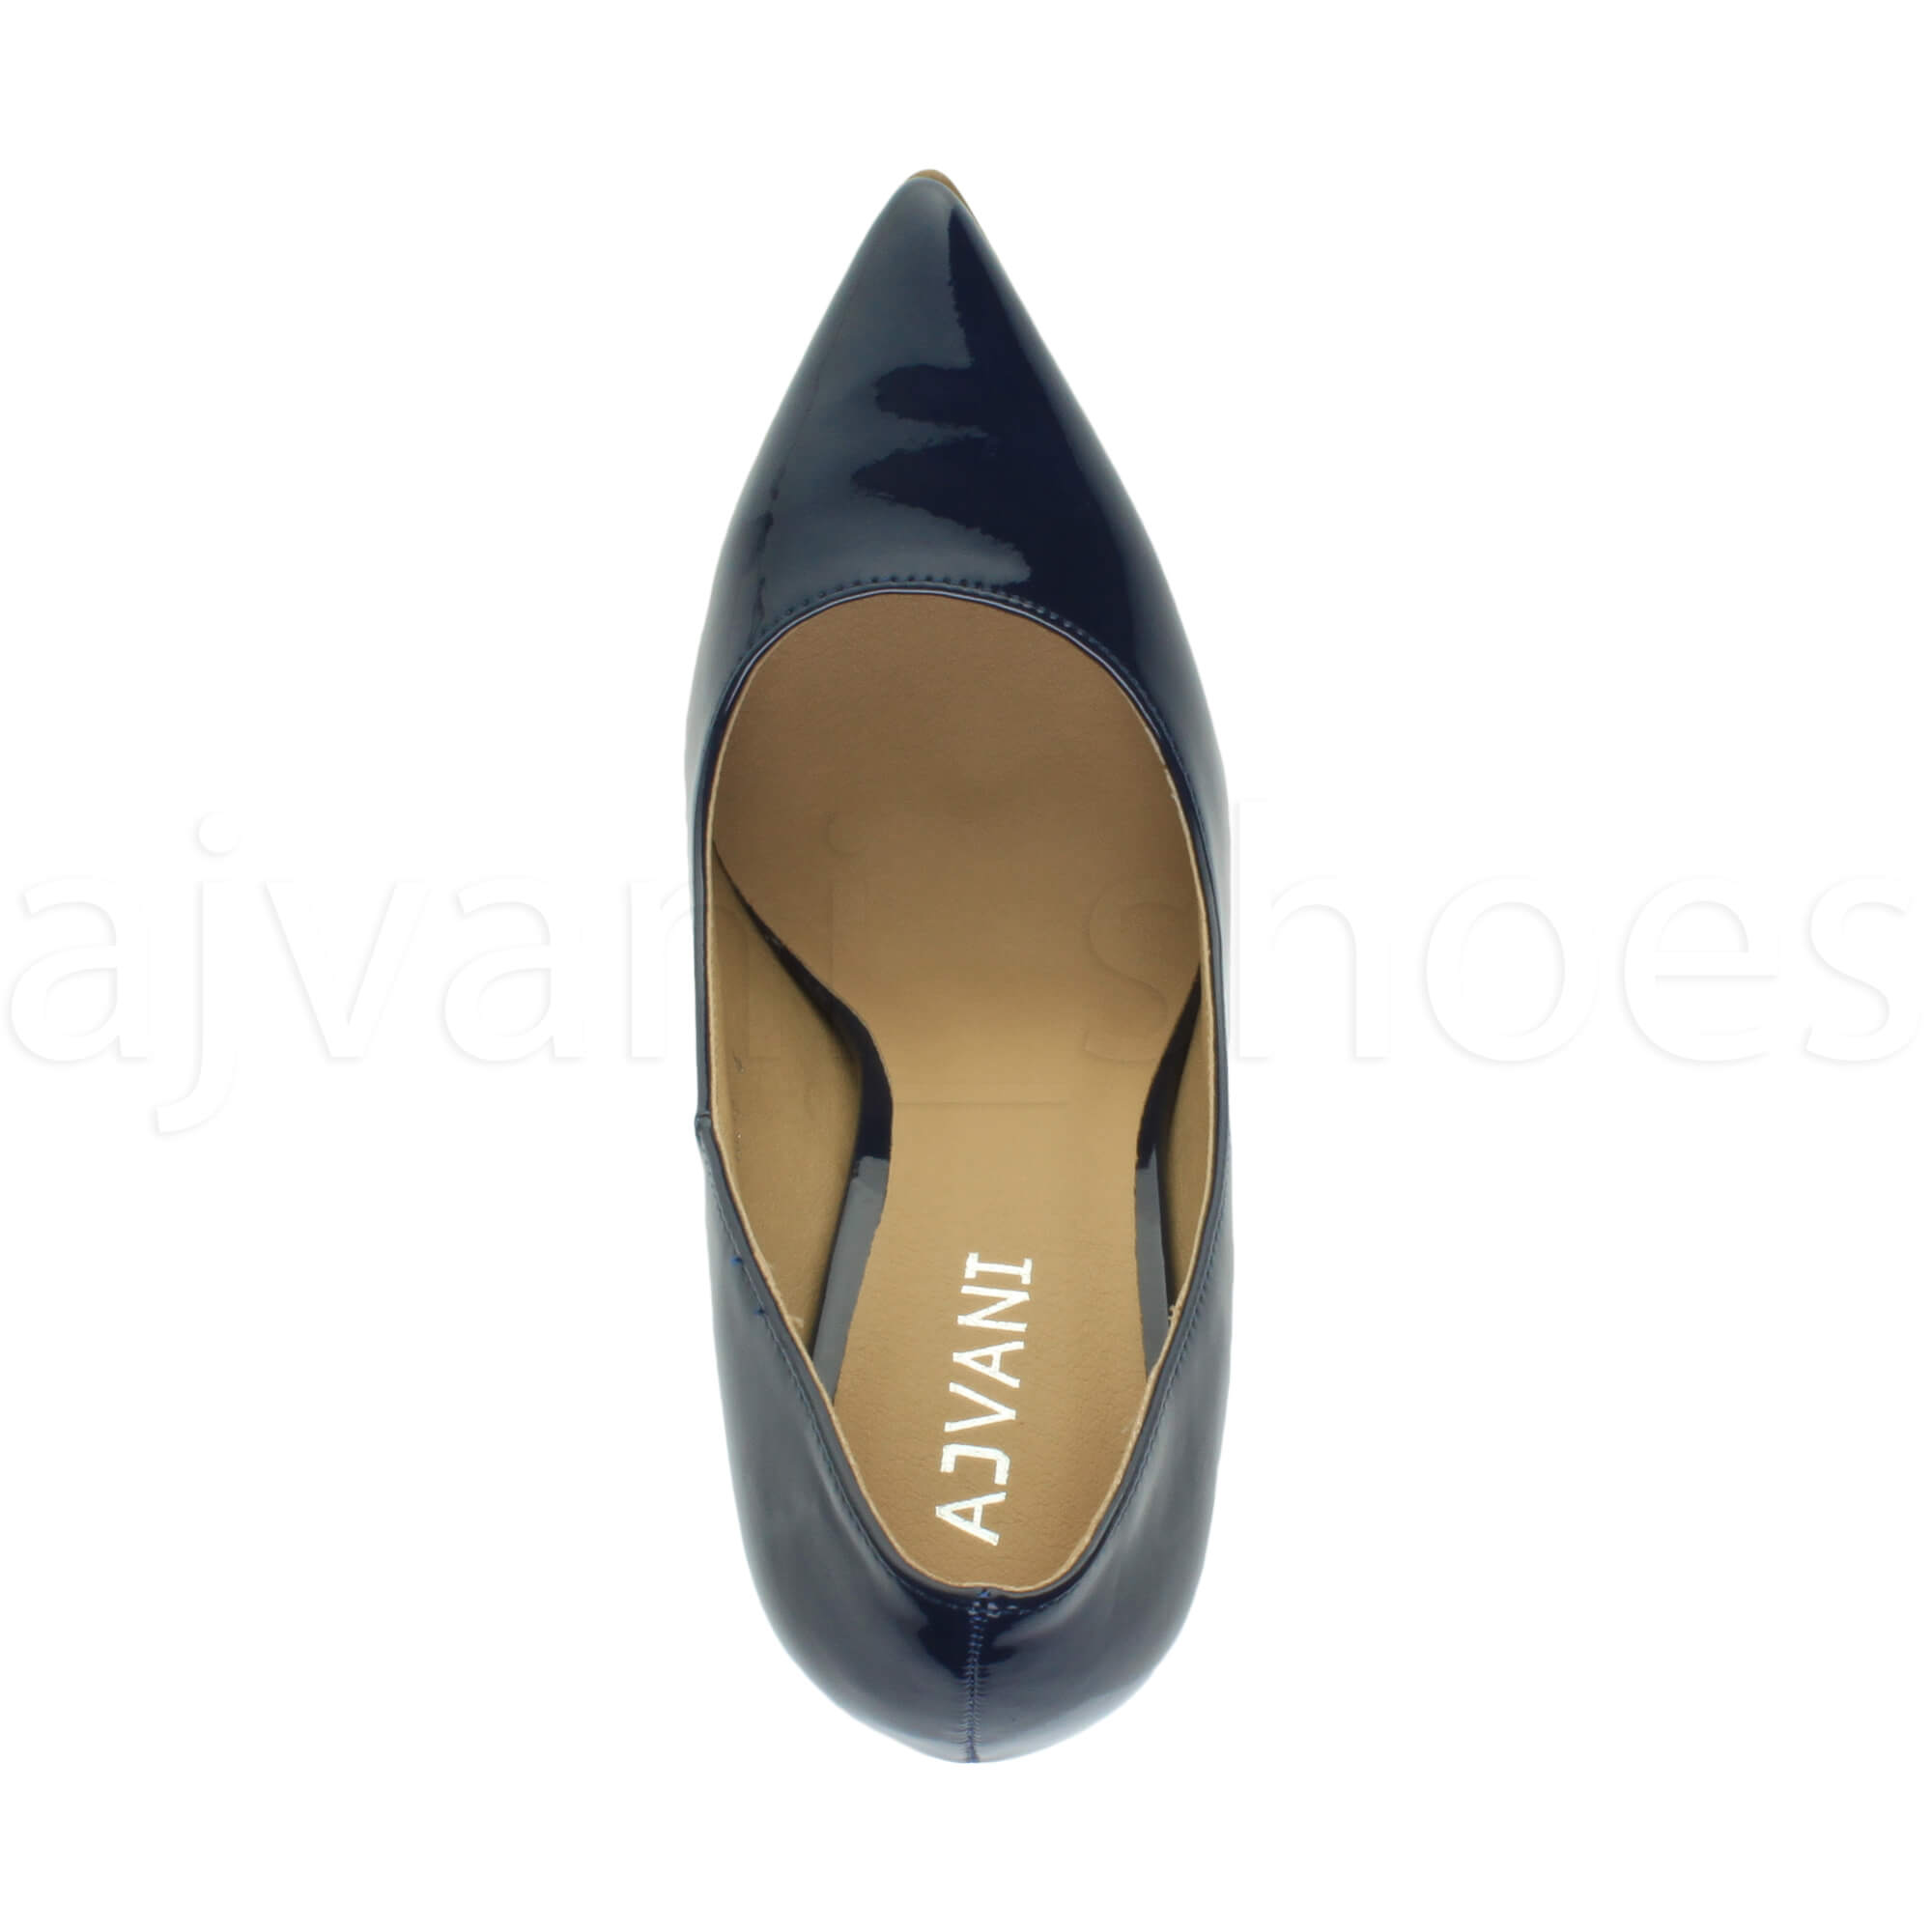 WOMENS-LADIES-HIGH-HEEL-POINTED-CONTRAST-COURT-SMART-PARTY-WORK-SHOES-PUMPS-SIZE thumbnail 102